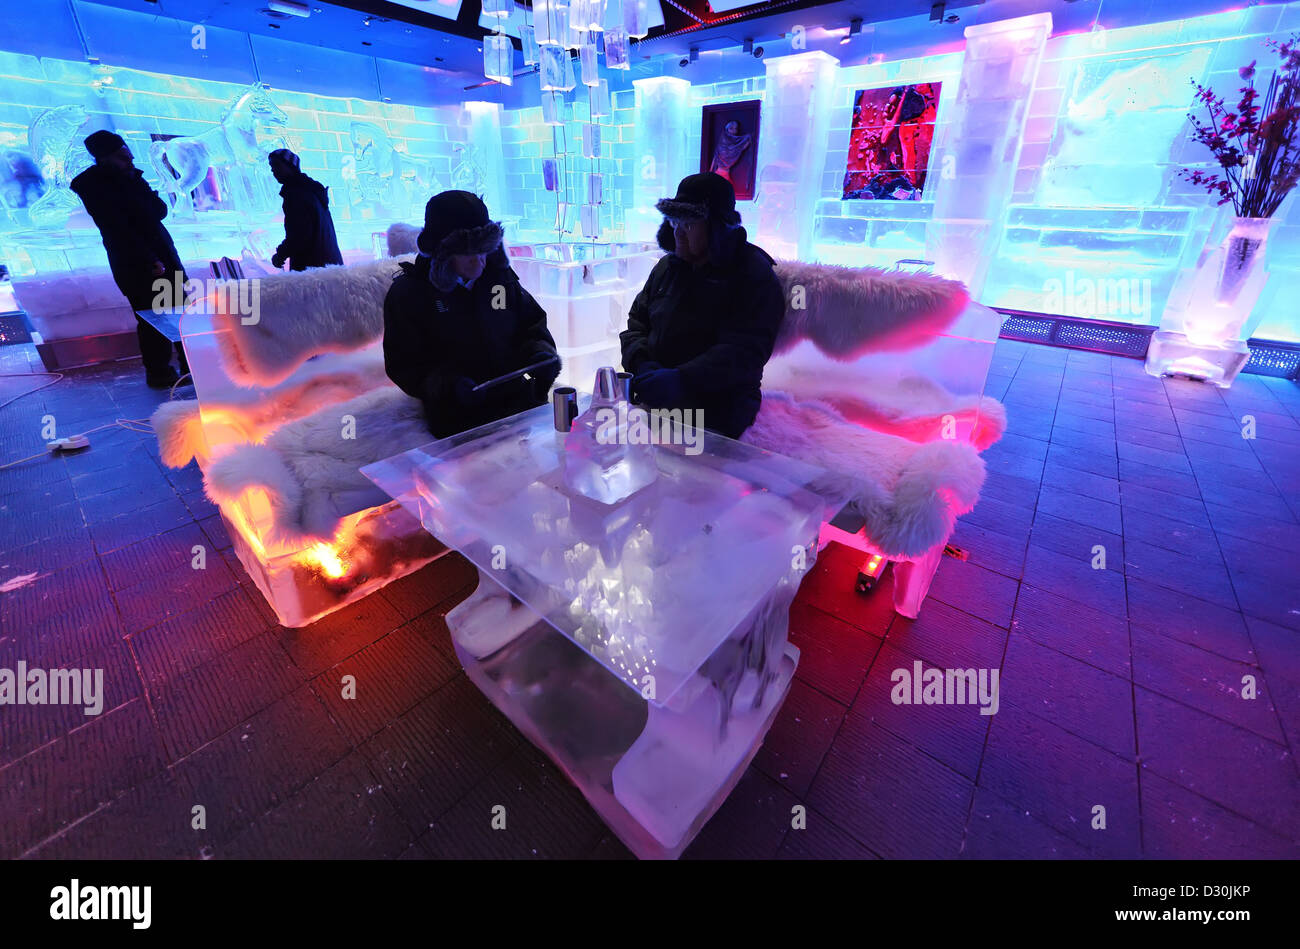 Dubai, United Arab Emirates, guests in the chill-out lounge - Stock Image